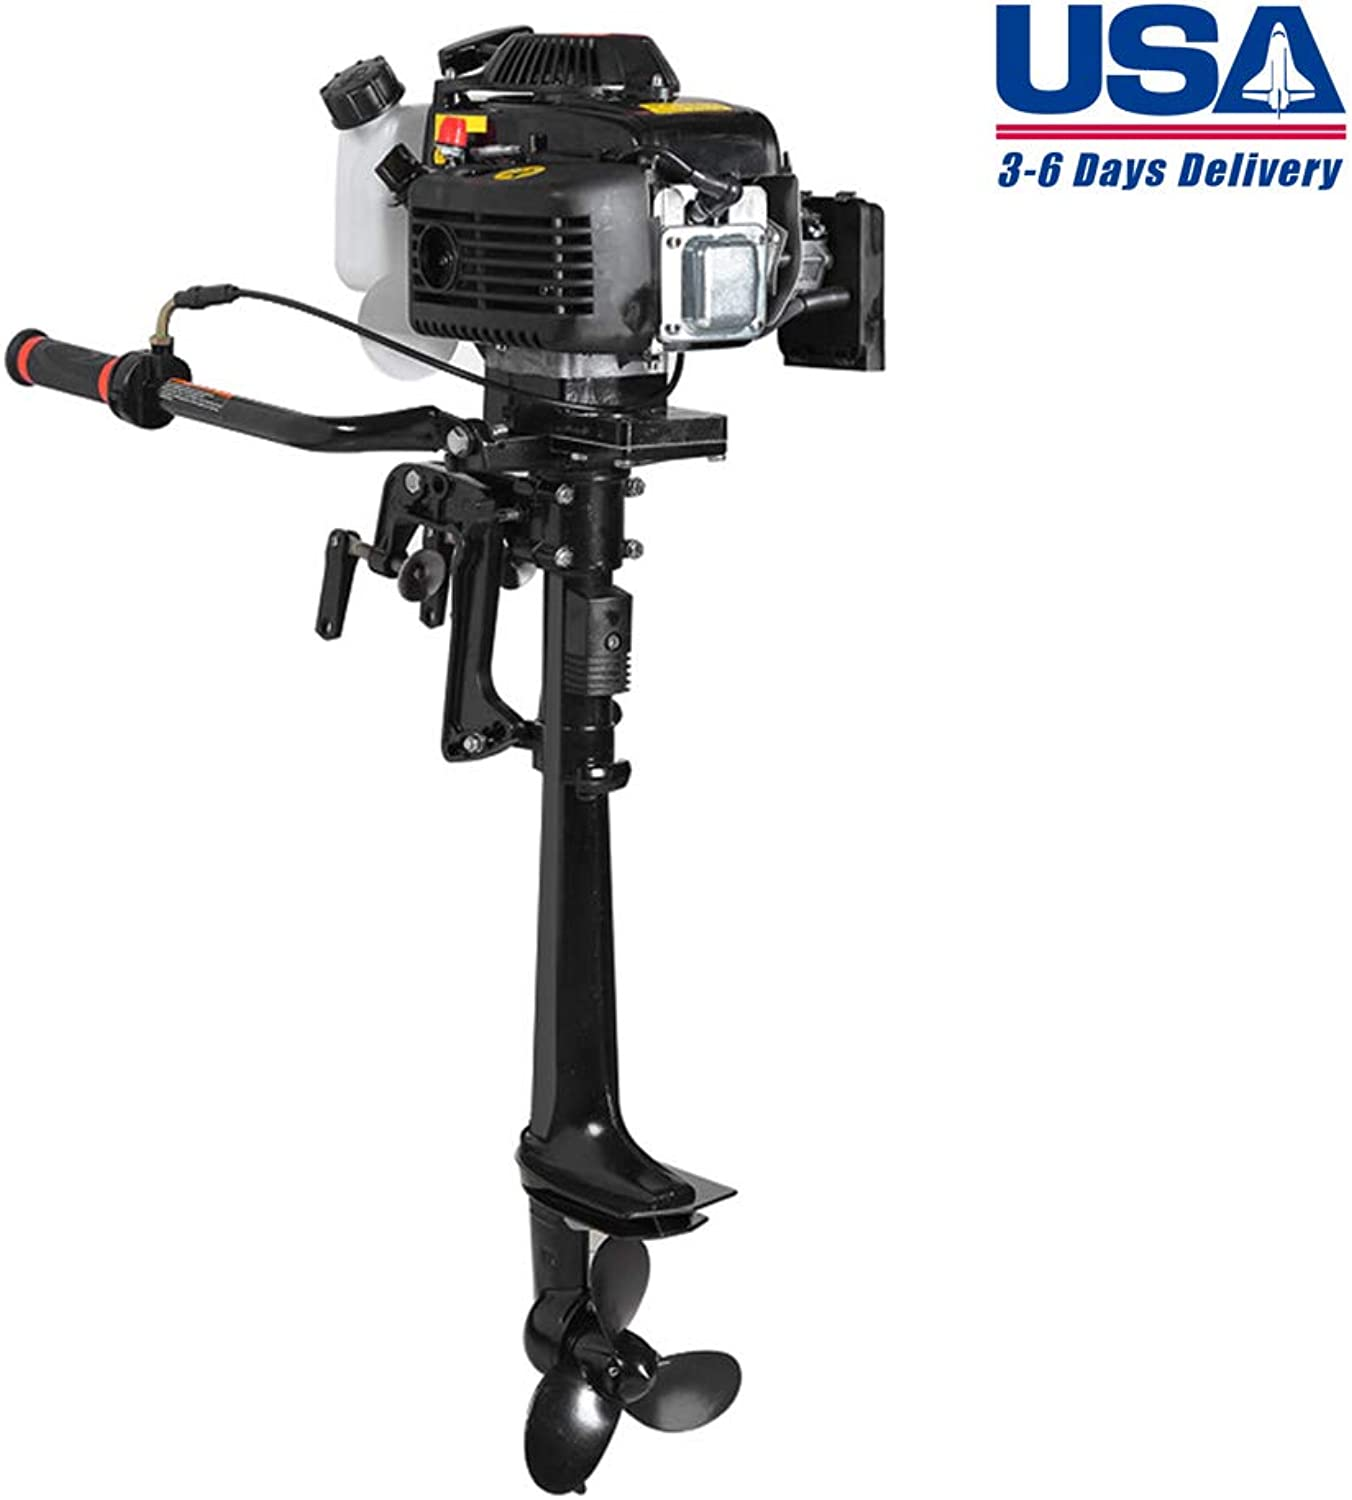 Zinnor 4 Stroke 3.6 HP Outboard Motor 55CC Boat Engine with Air Cooling System, USA Shipping